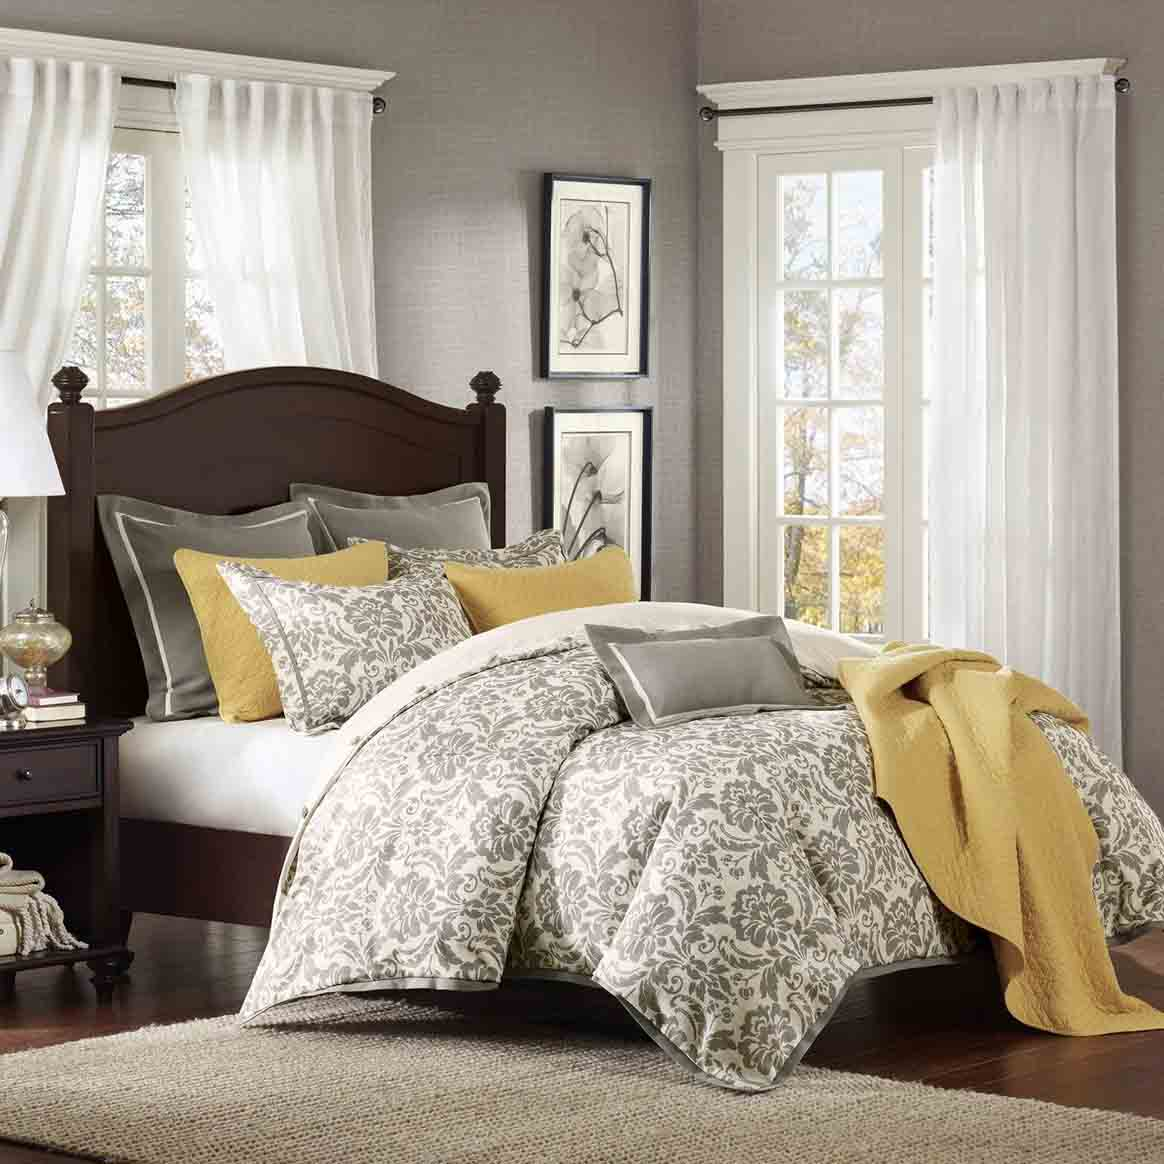 yellow bedroom furniture. Gorgeous Grey And Yellow Bedroom Furniture